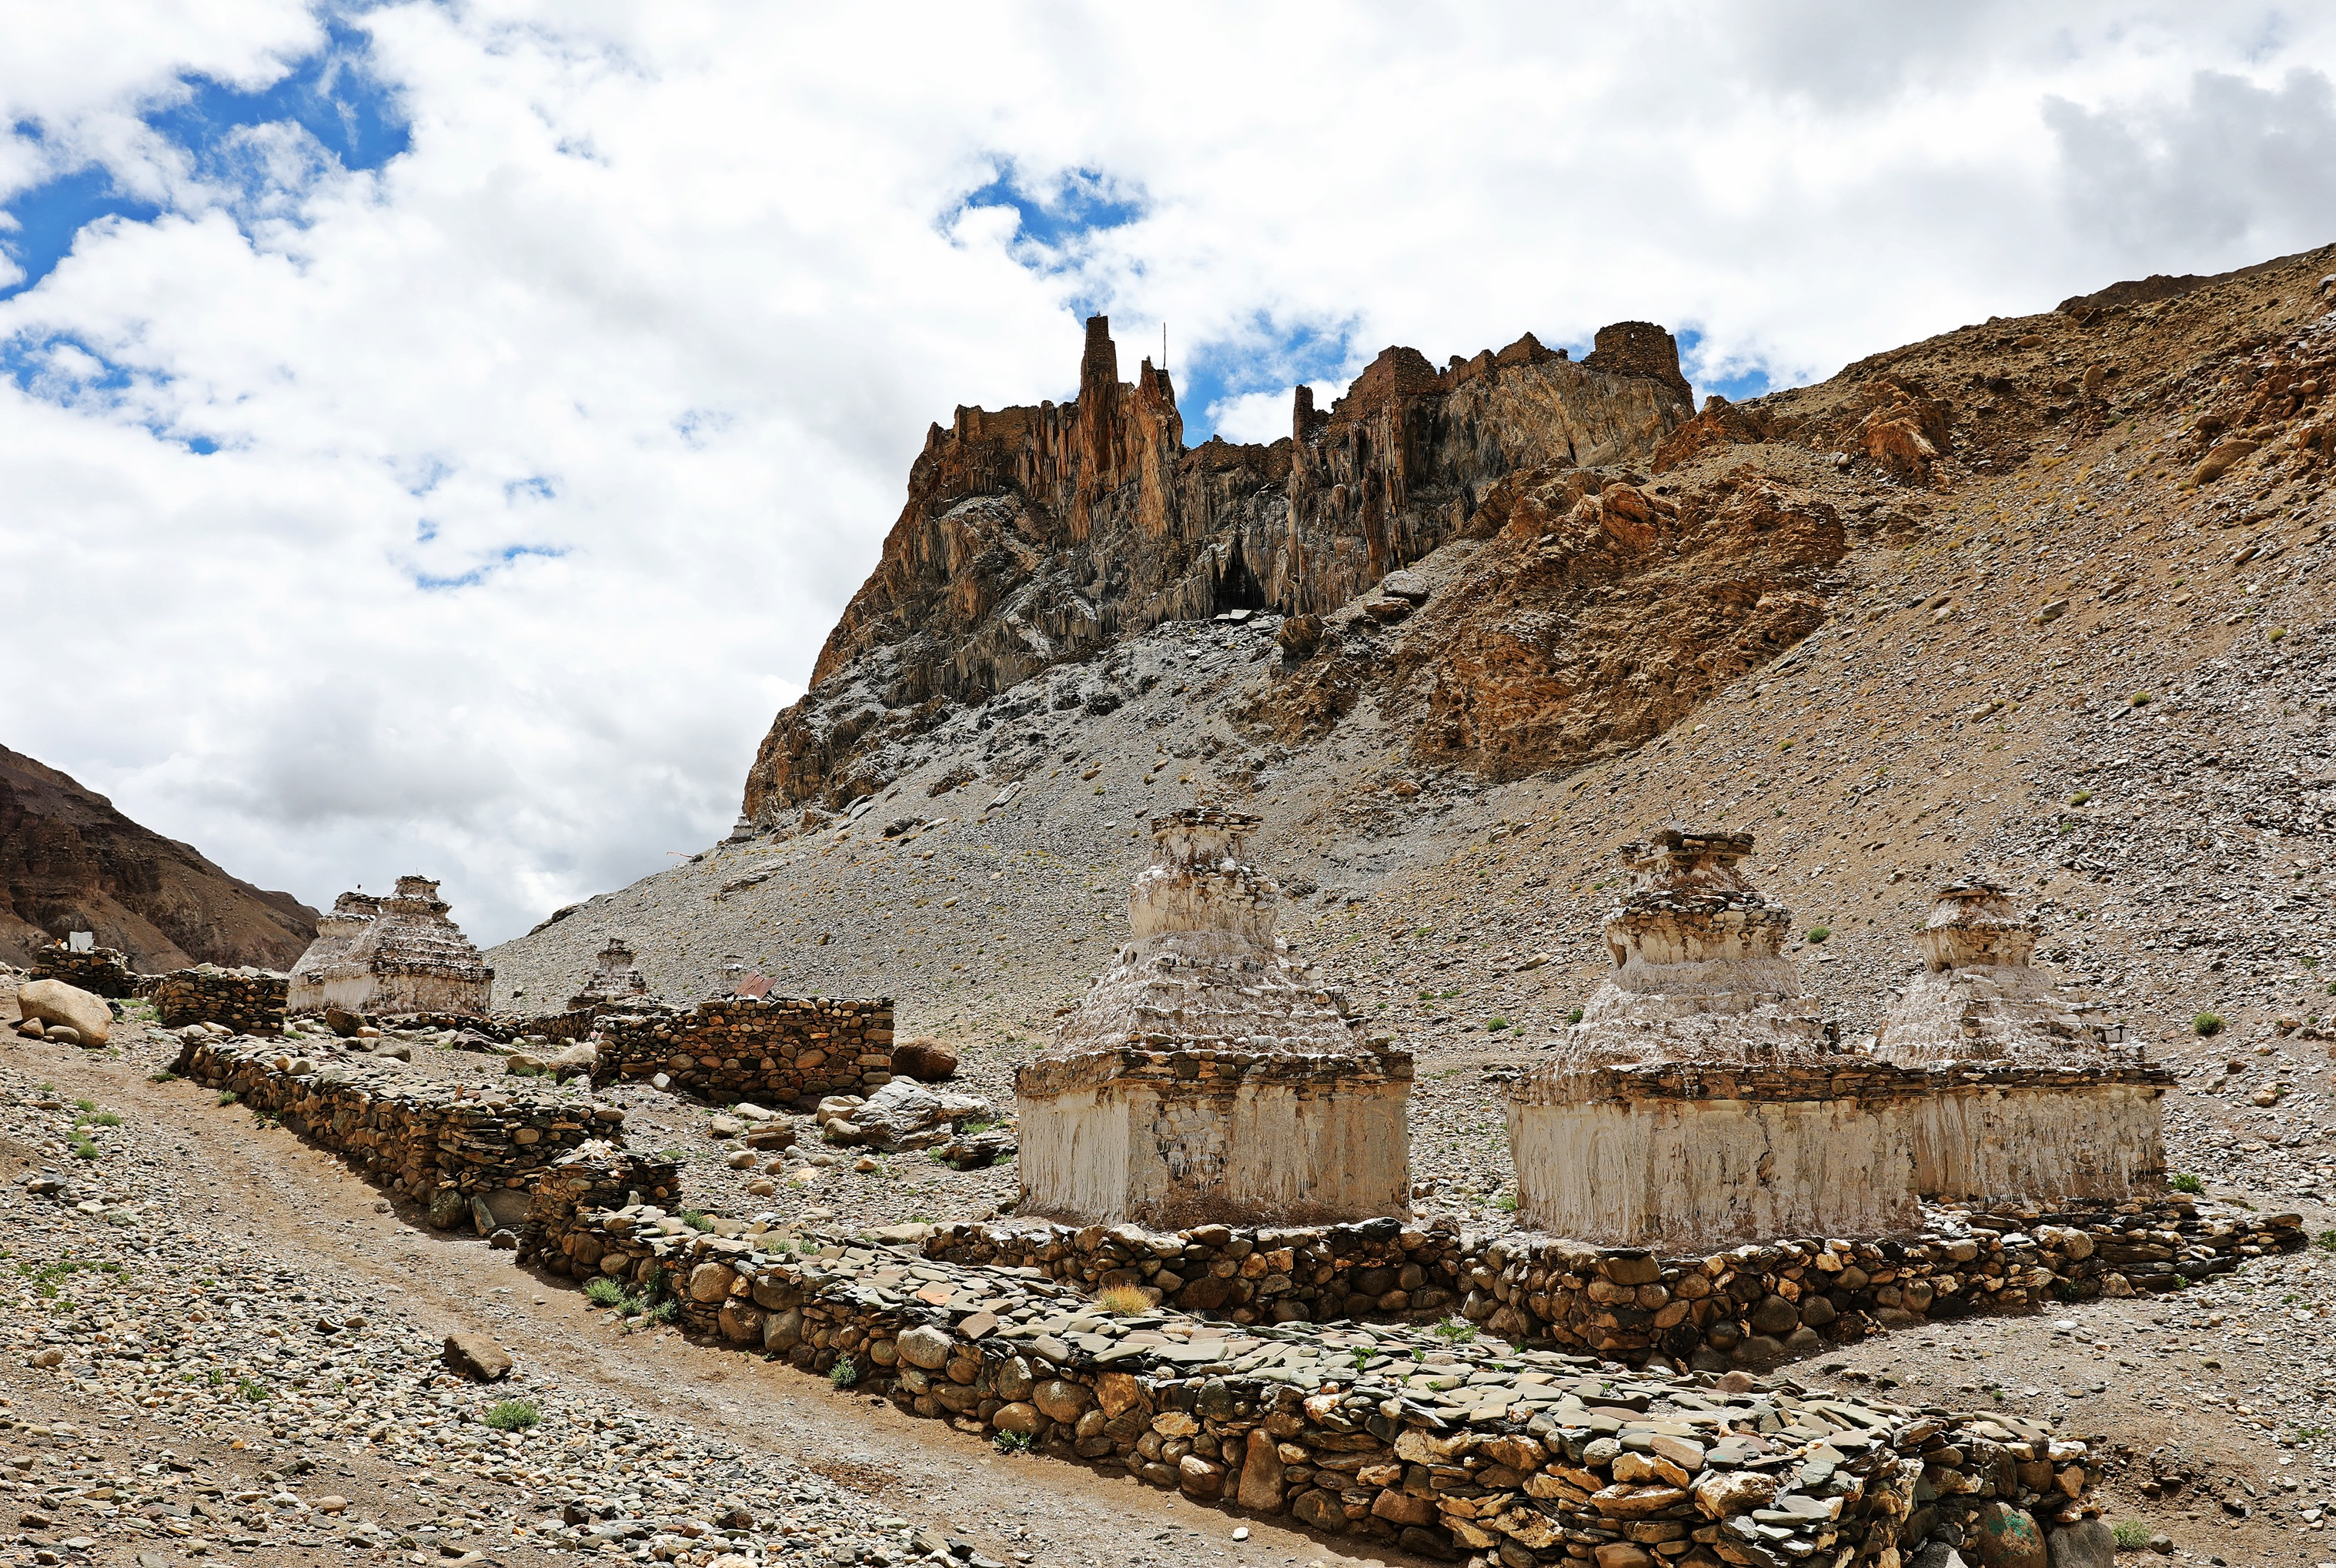 Chortens and a fort near the village of Hankar